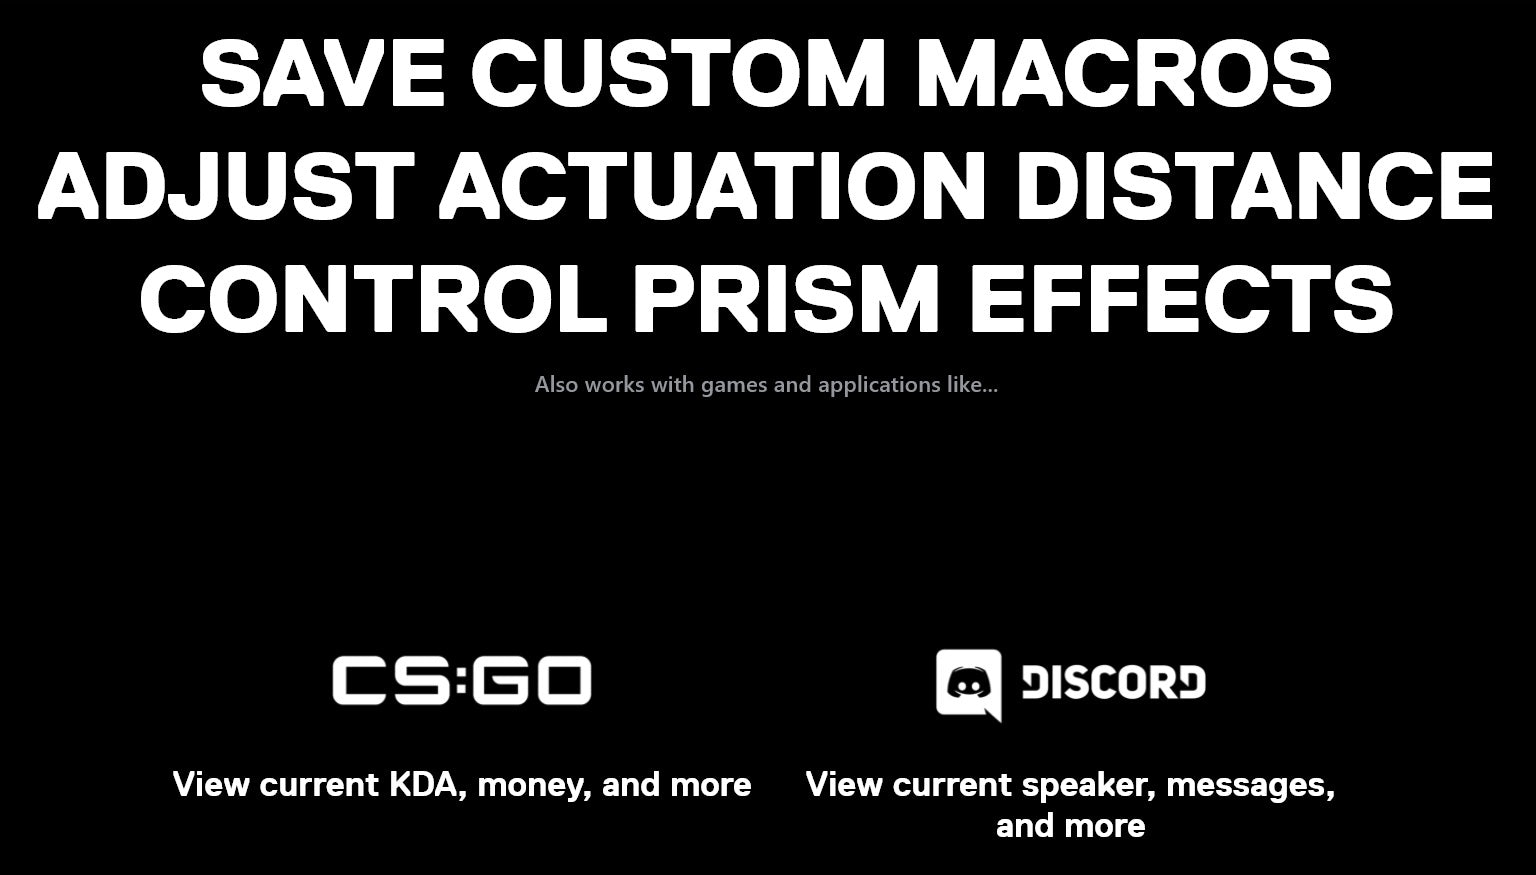 SAVE CUSTOM MACROS, ADJUST ACTUATION DISTANCE, CONTROL PRISM EFFECTS